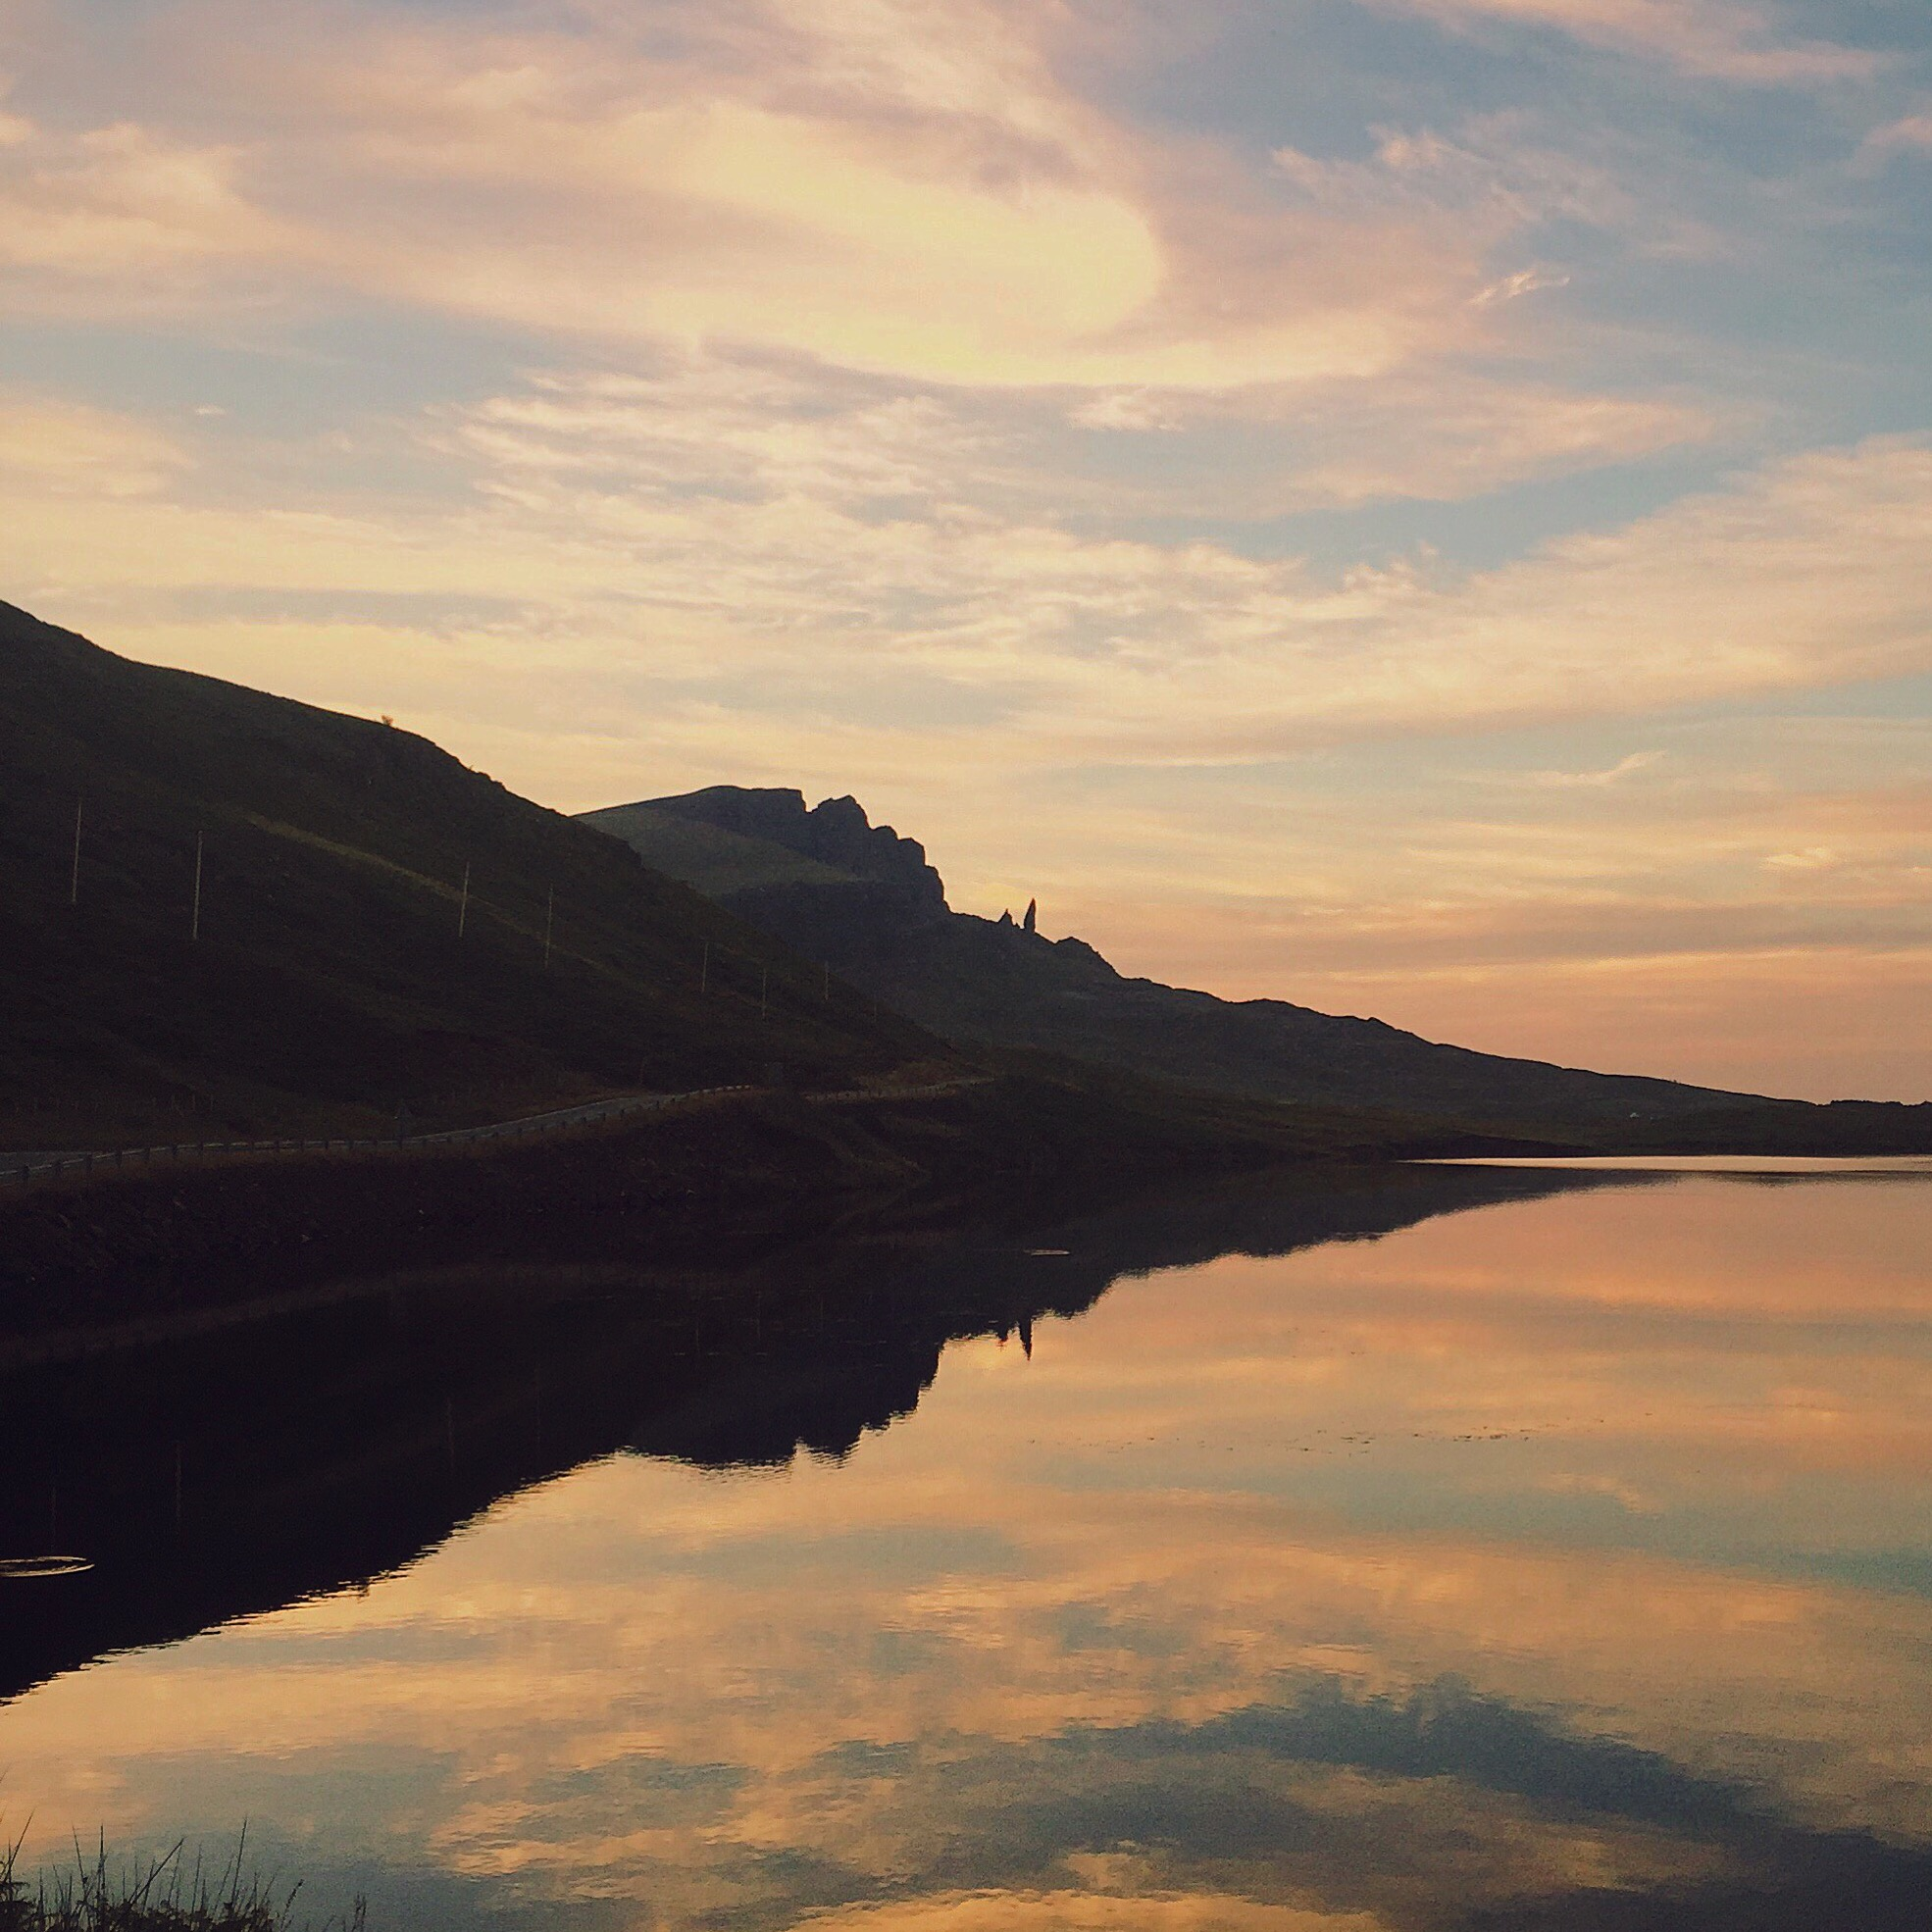 iPhone 6, Isle of Skye  The use of the water and the sky help provide balance and create some beautiful symmetry.